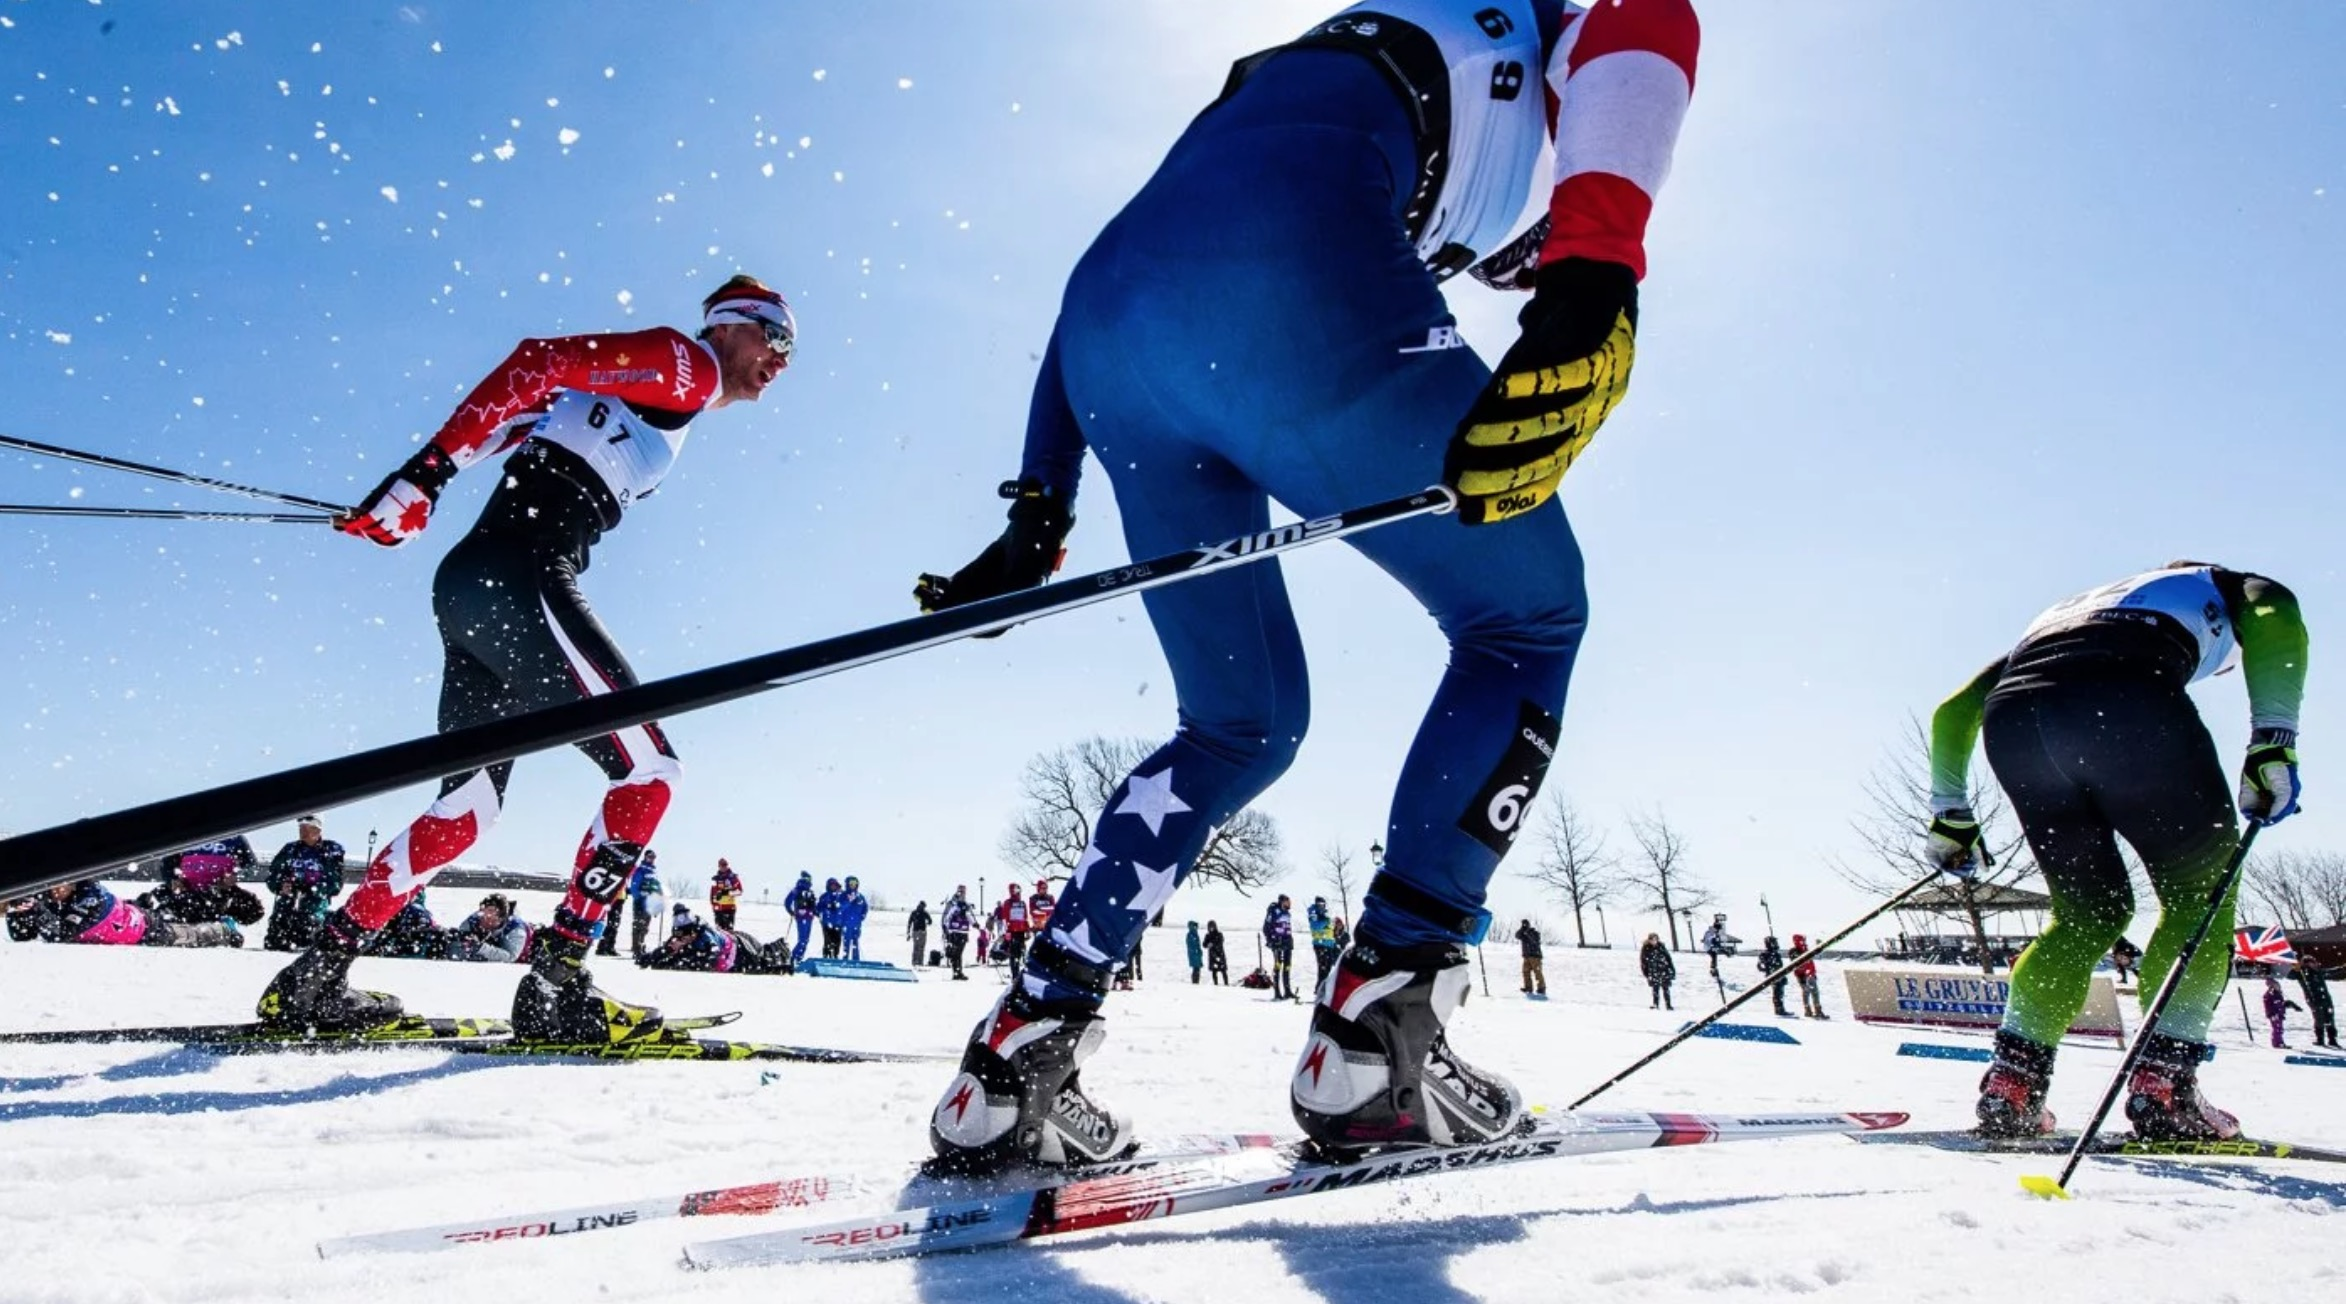 Nordic Skiing's Addiction To Toxic 'Lightning-Fast' Wax